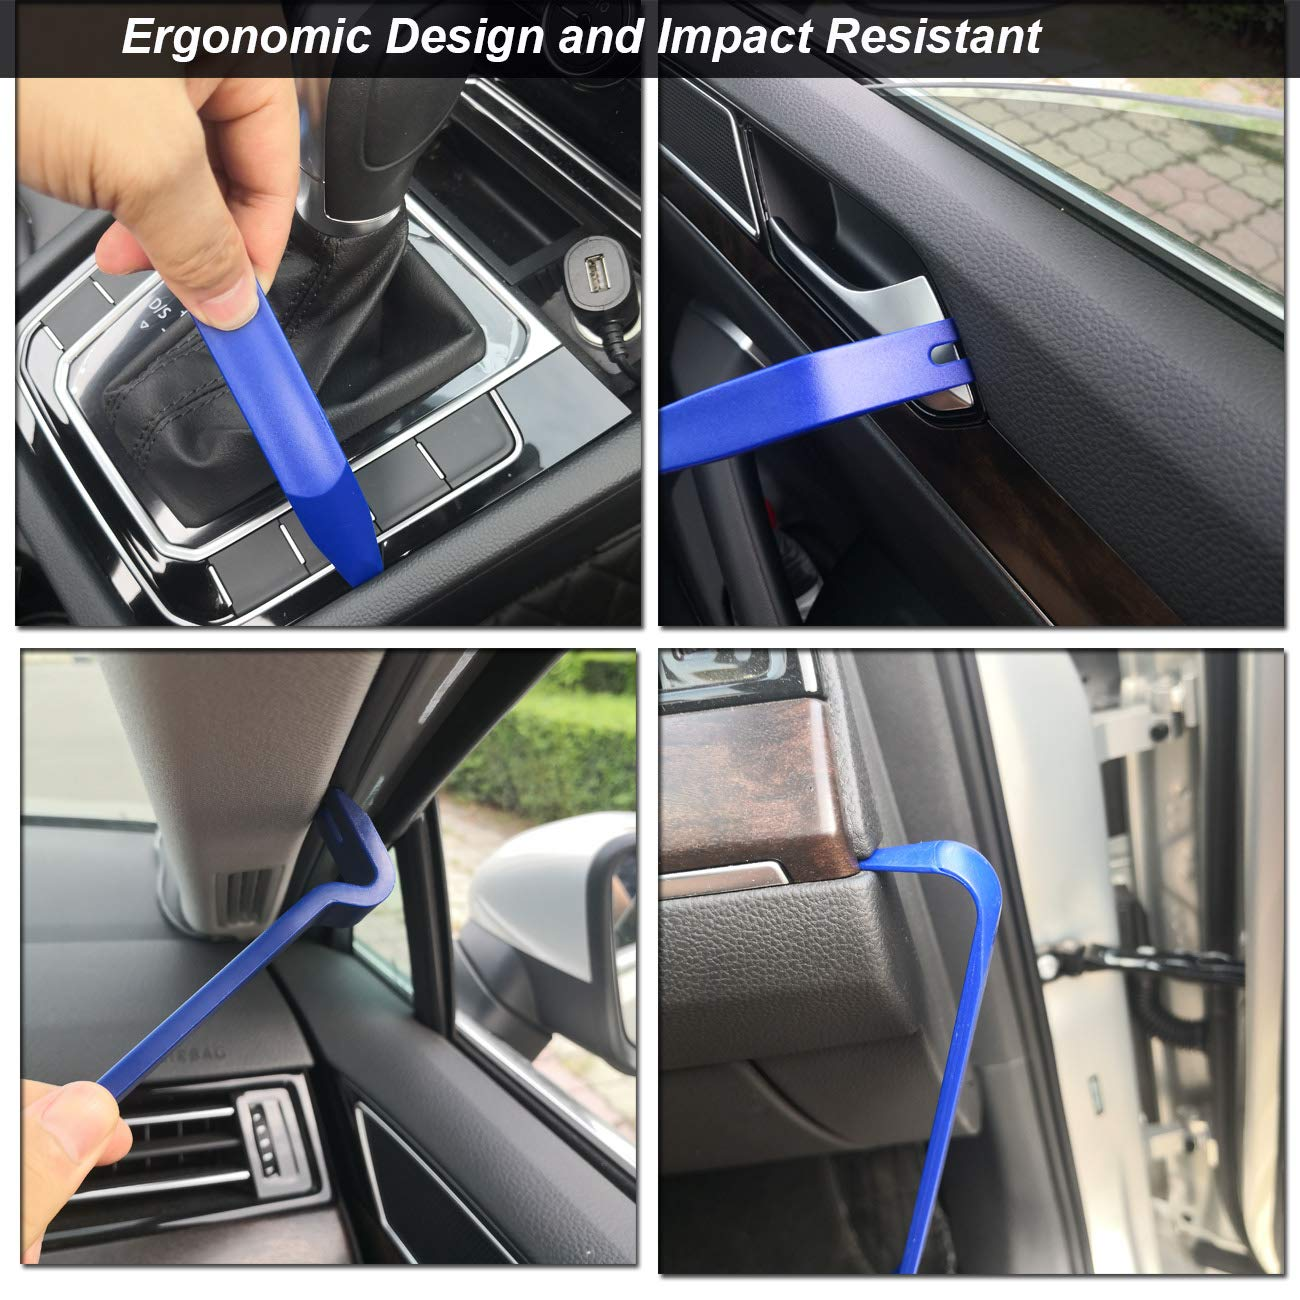 Upholstery Toolkit 12Pcs Auto Panel Removal Tool Car Interior Trim Kit Fastener Rivet Remover Plastic Pry Tool for Automotive Radio Stereo Dash Kitbest Trim Removal Tool